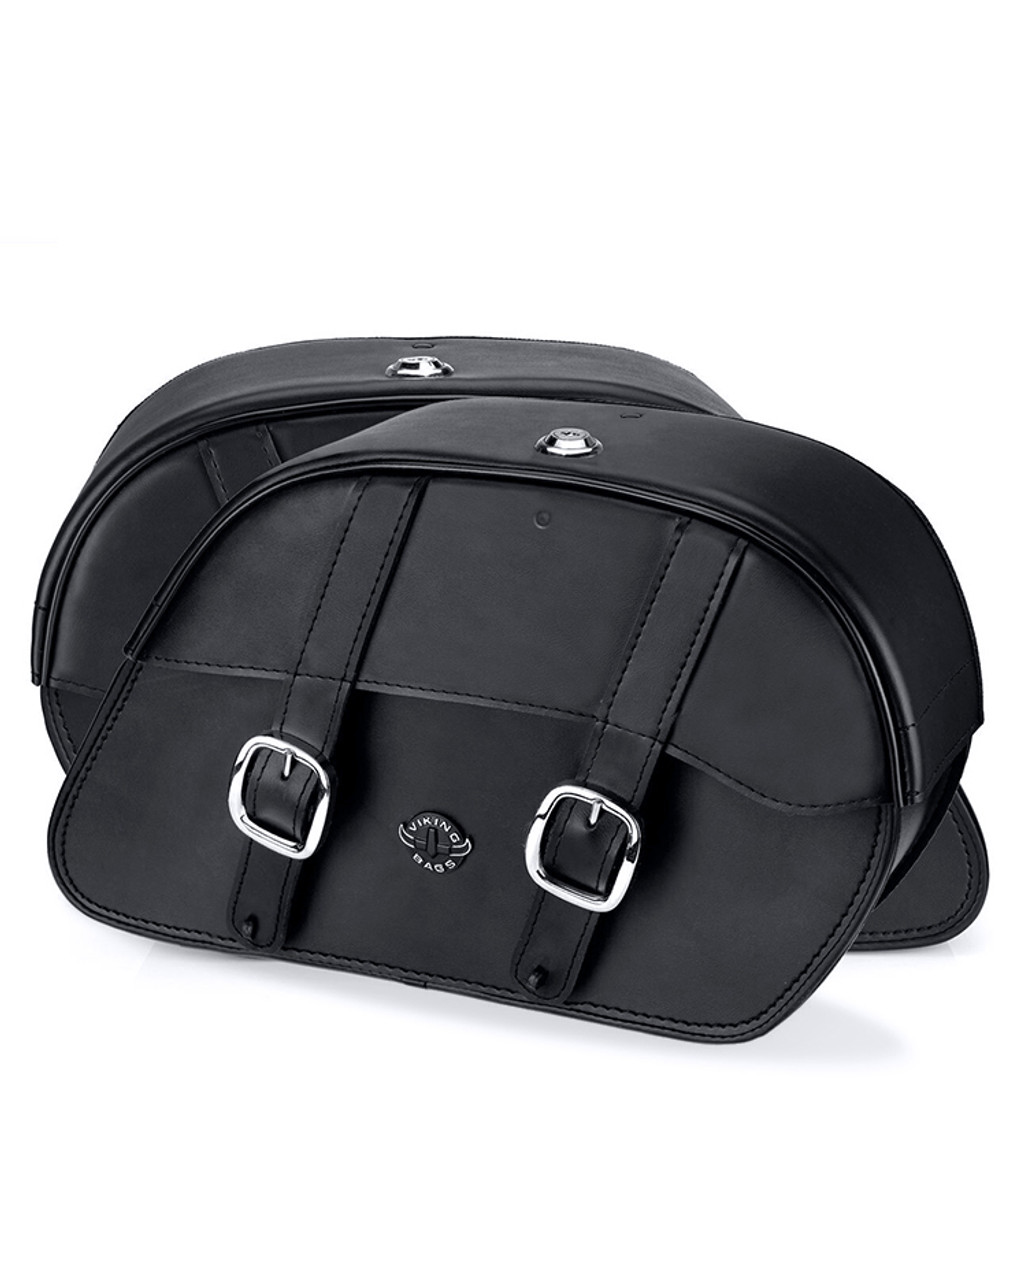 VikingBags Skarner Large Double Strap Victory Octane Leather Motorcycle Saddlebags Both Bags View